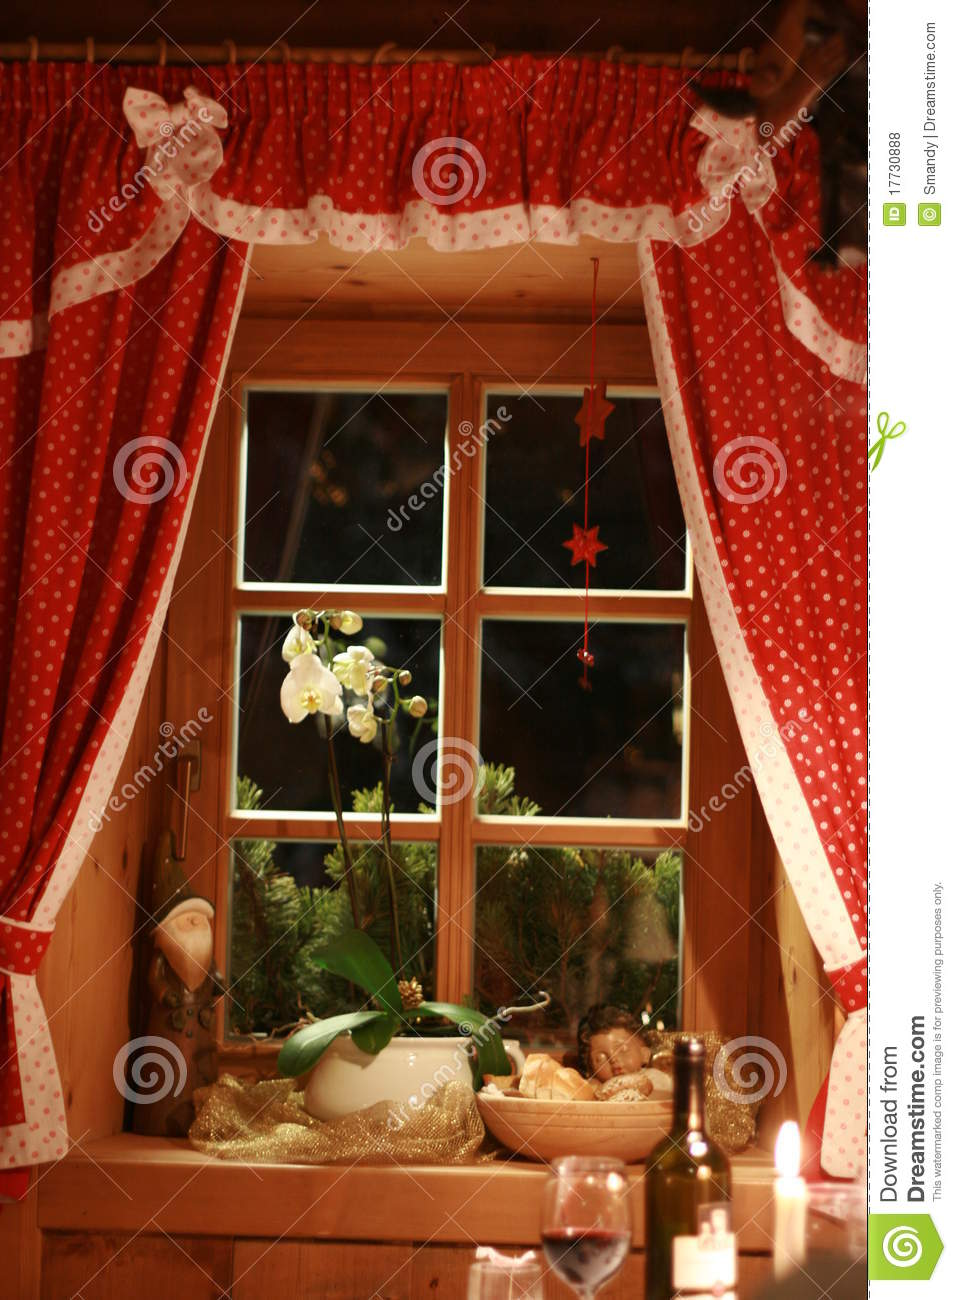 Fairytale Window With Red Curtains Royalty Free Stock